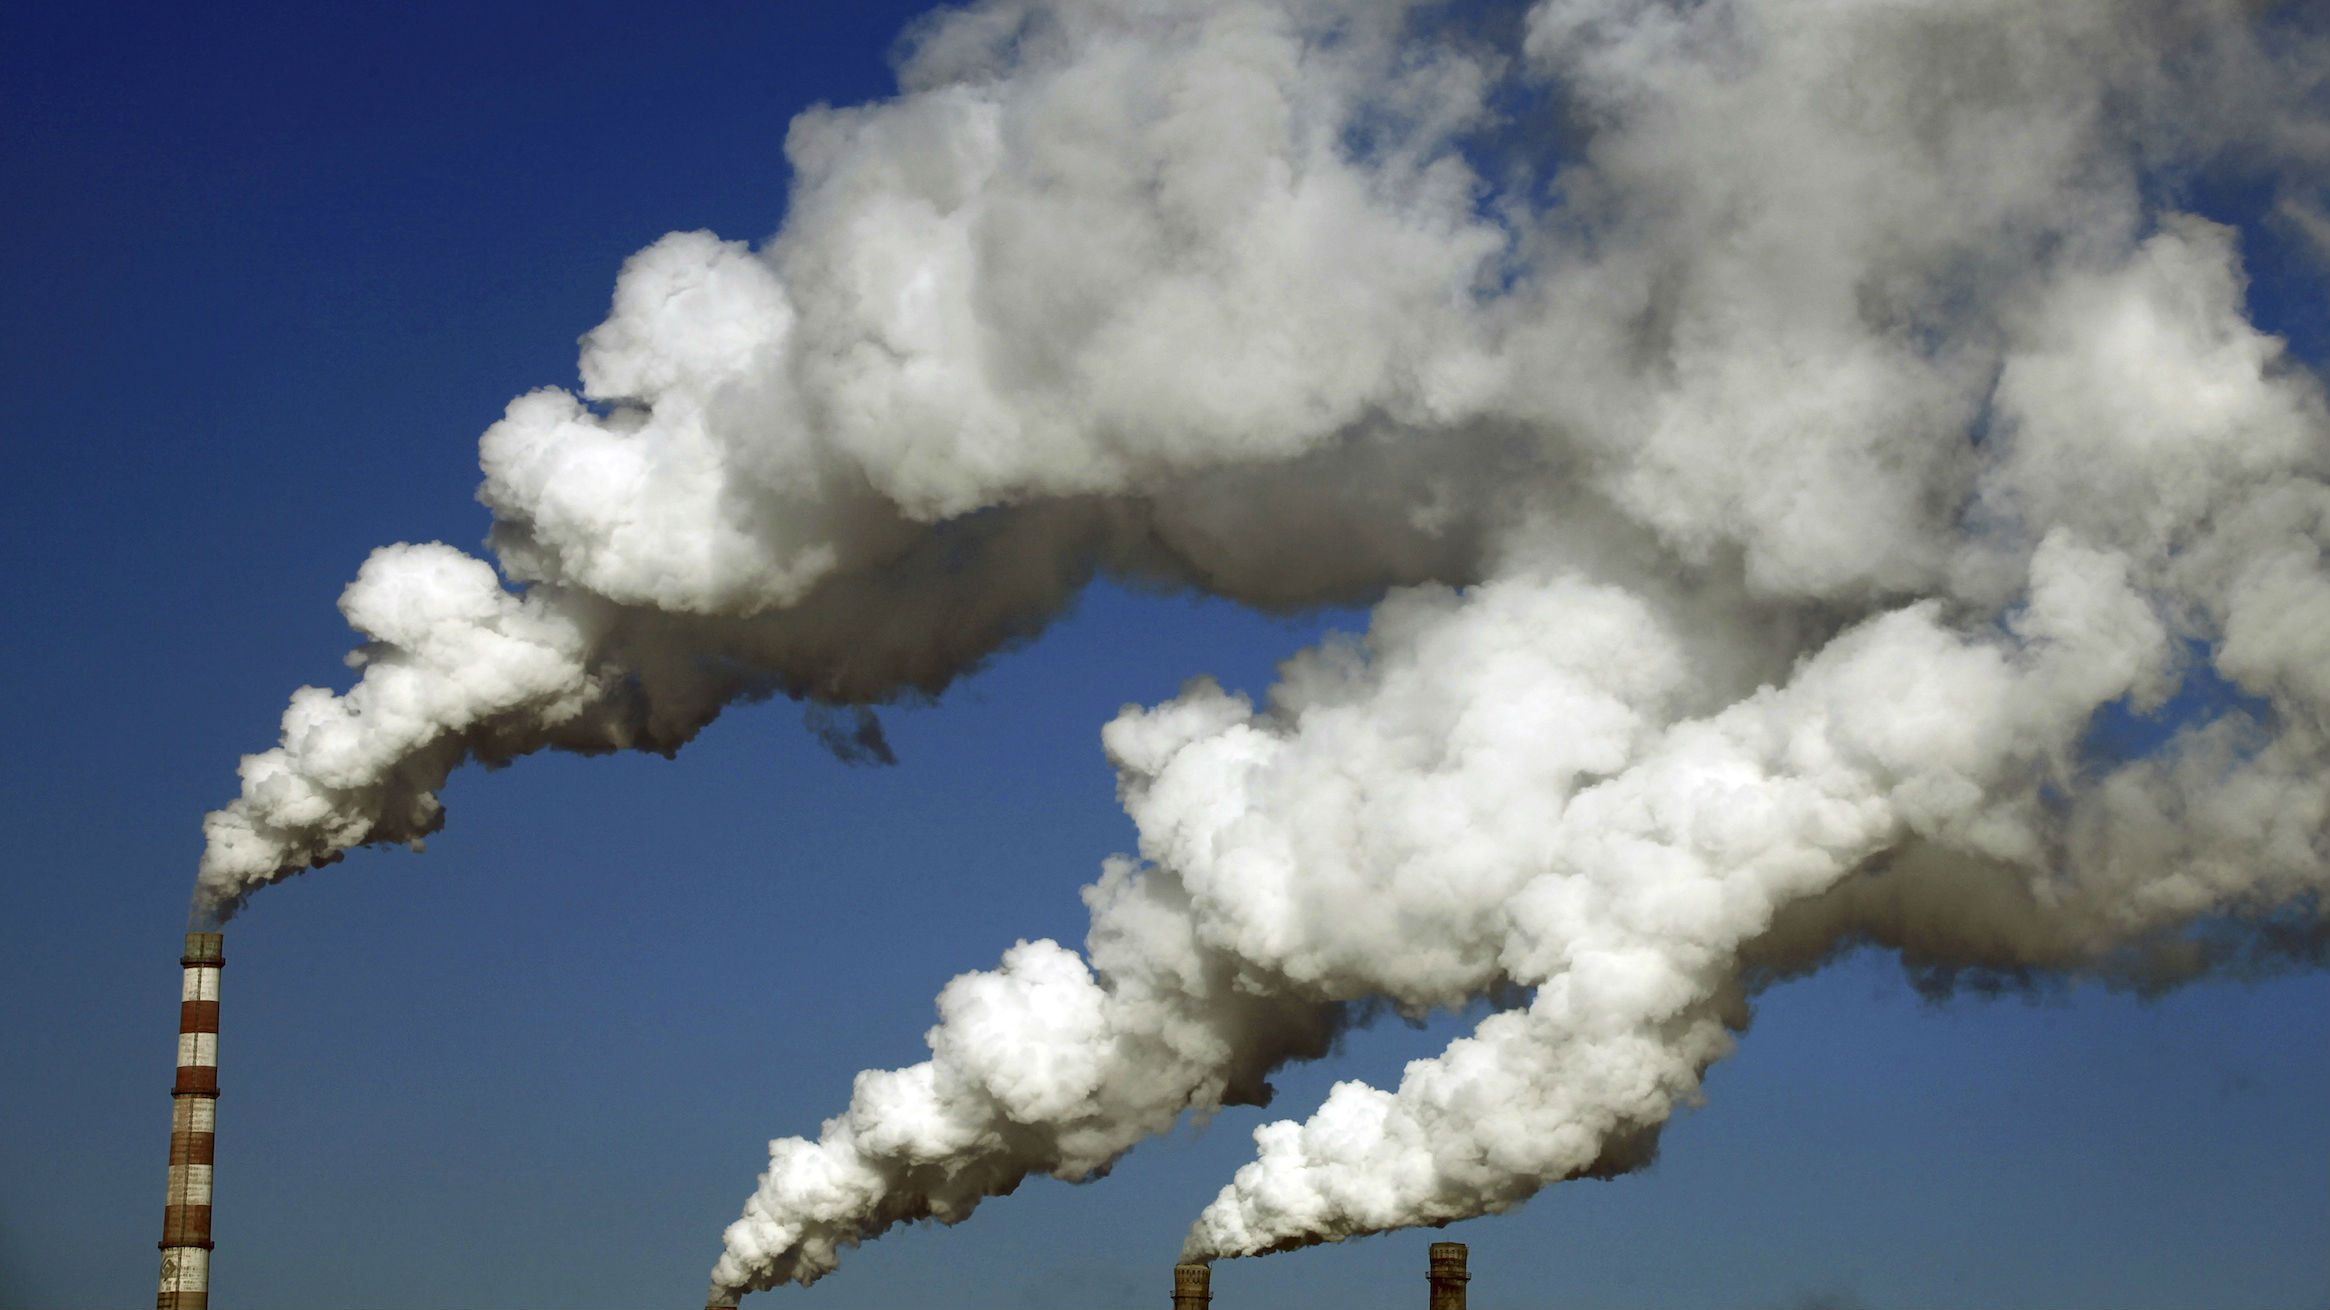 Smoke billows from the chimneys of a heating plant in Jilin, Jilin province January 8, 2014.